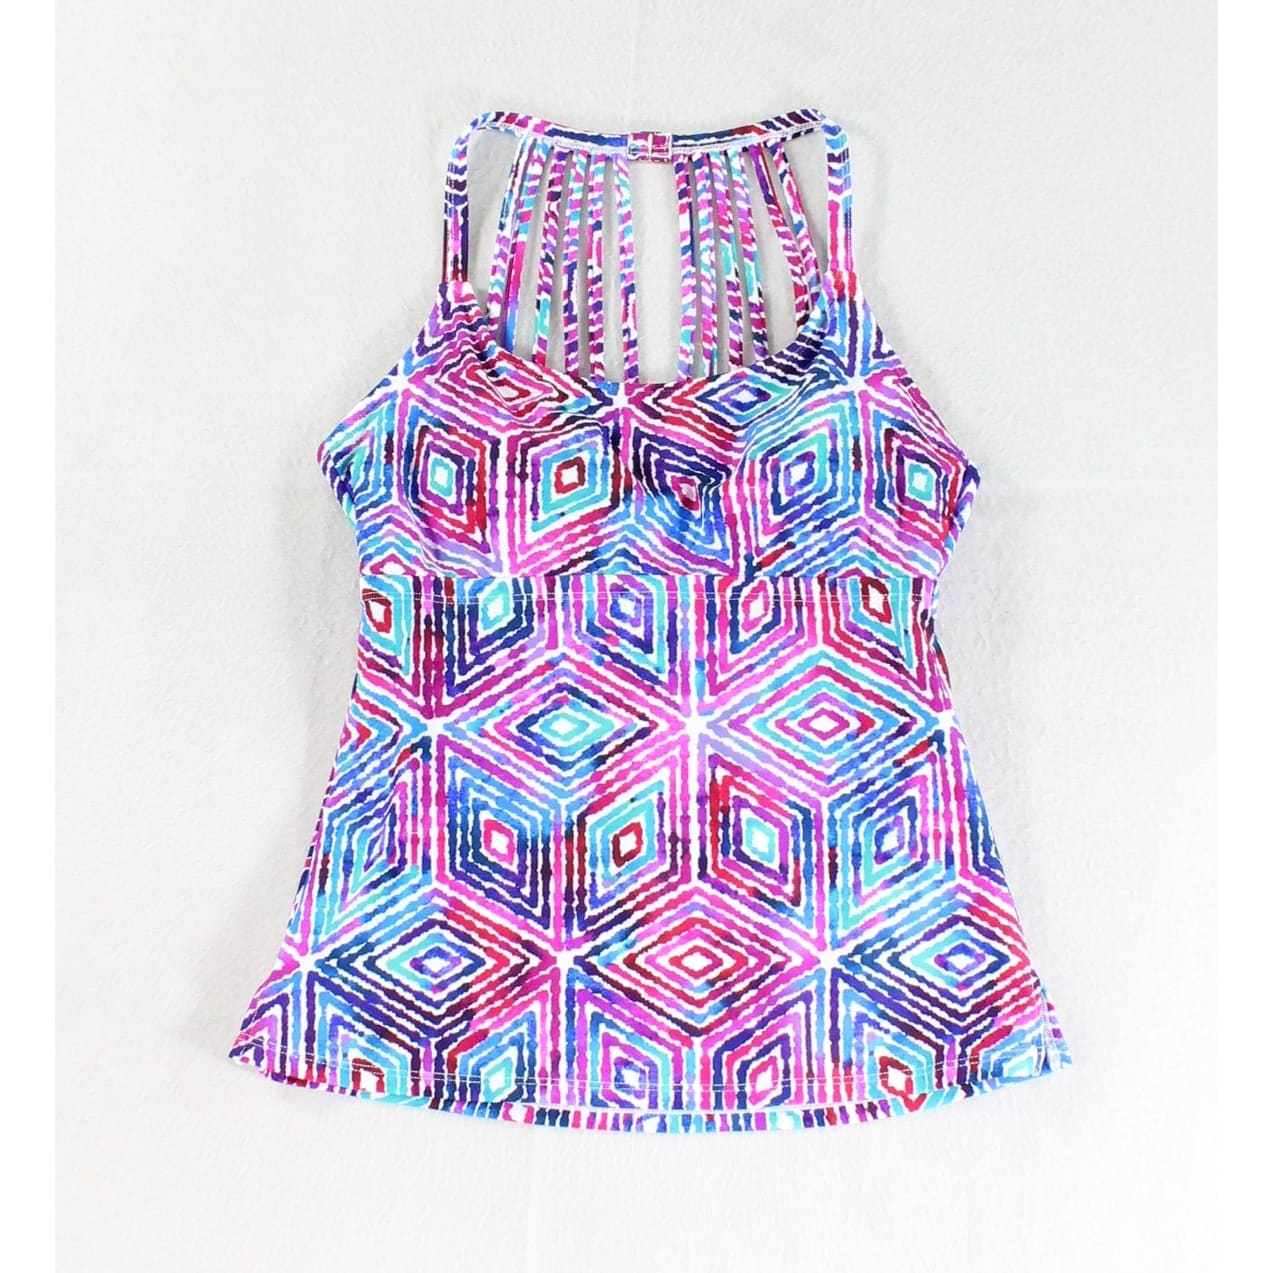 Leilani NEW Blue Purple Women's Size 6 Geo Print Strappy Tankini Top - Free  Shipping On Orders Over $45 - Overstock.com - 27392955